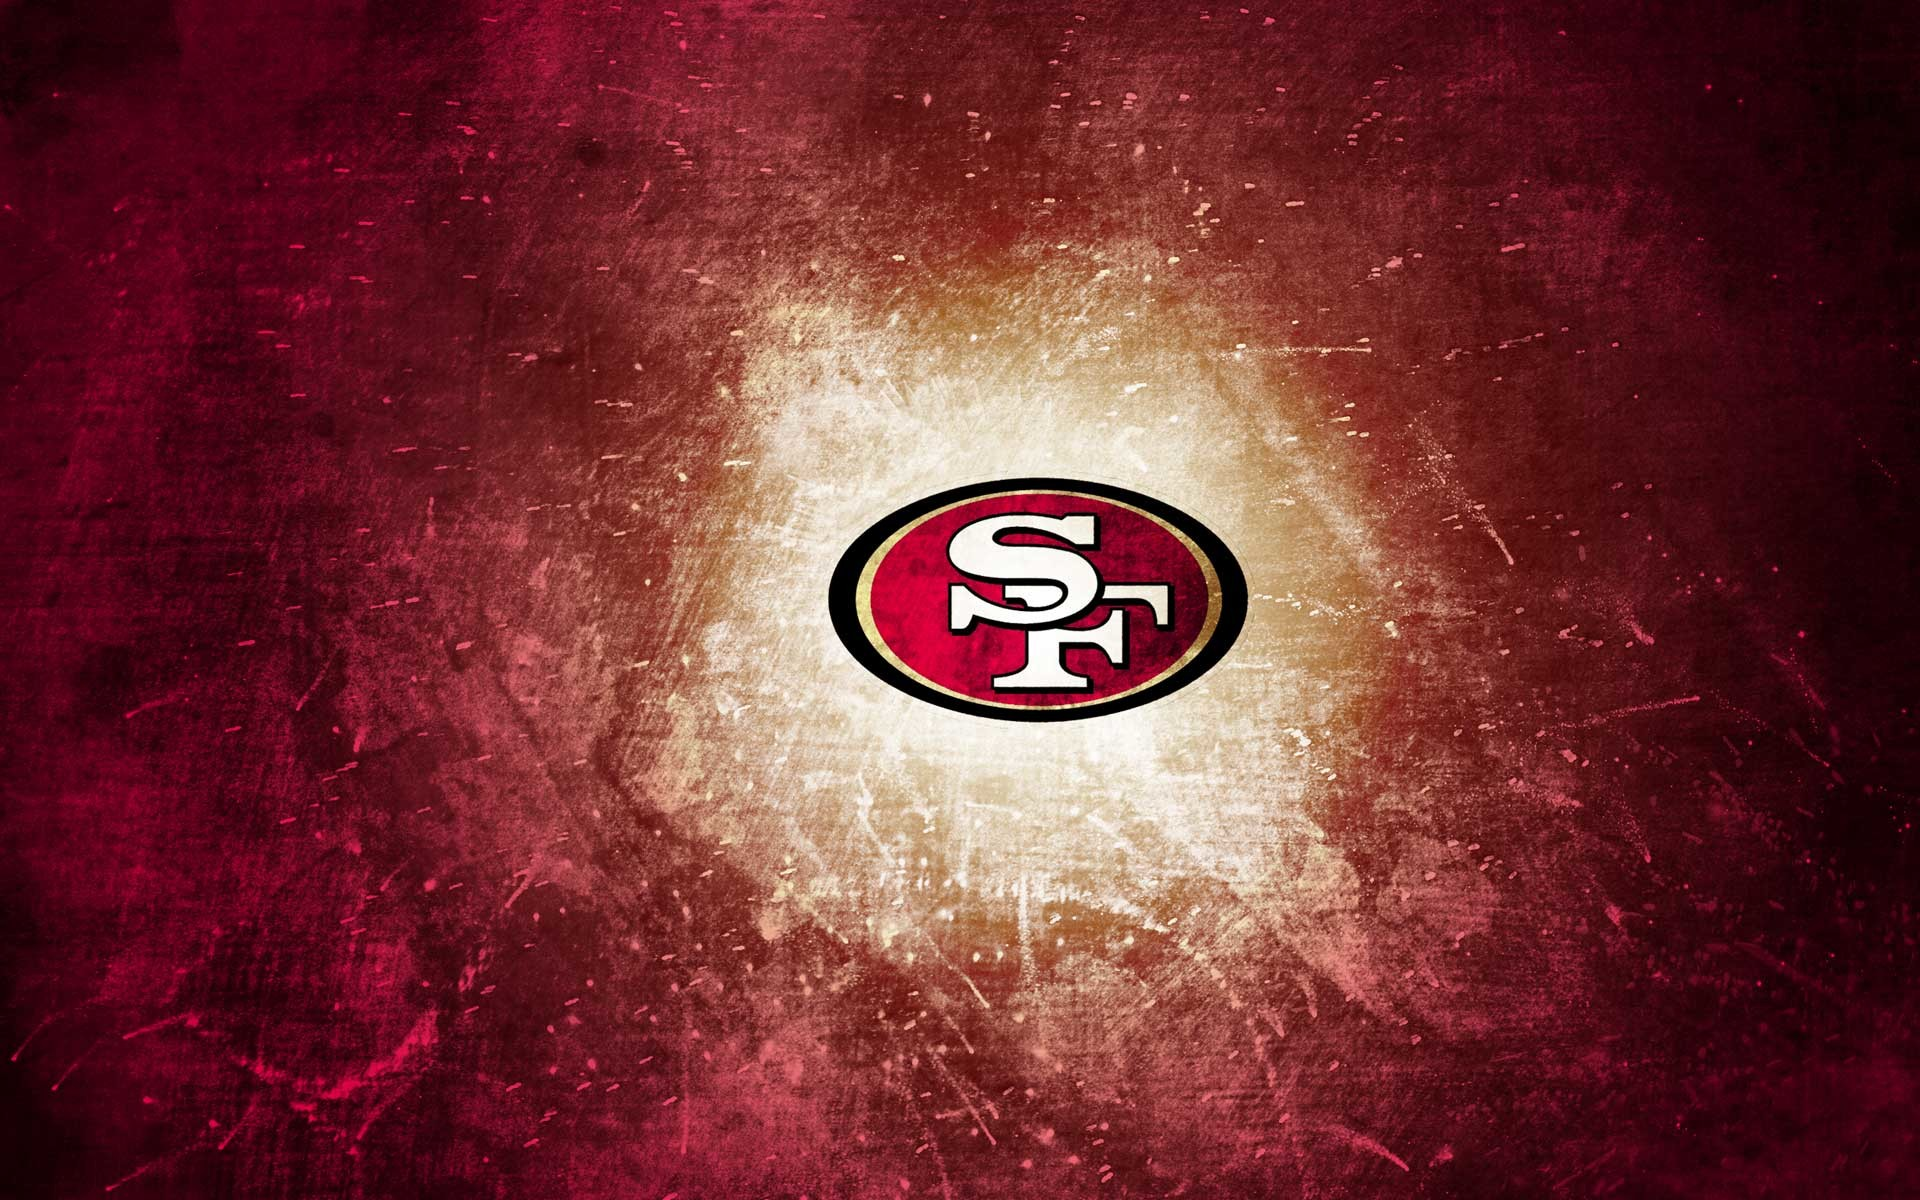 d151beb1 49ers Wallpapers Your Phone (67+ images)